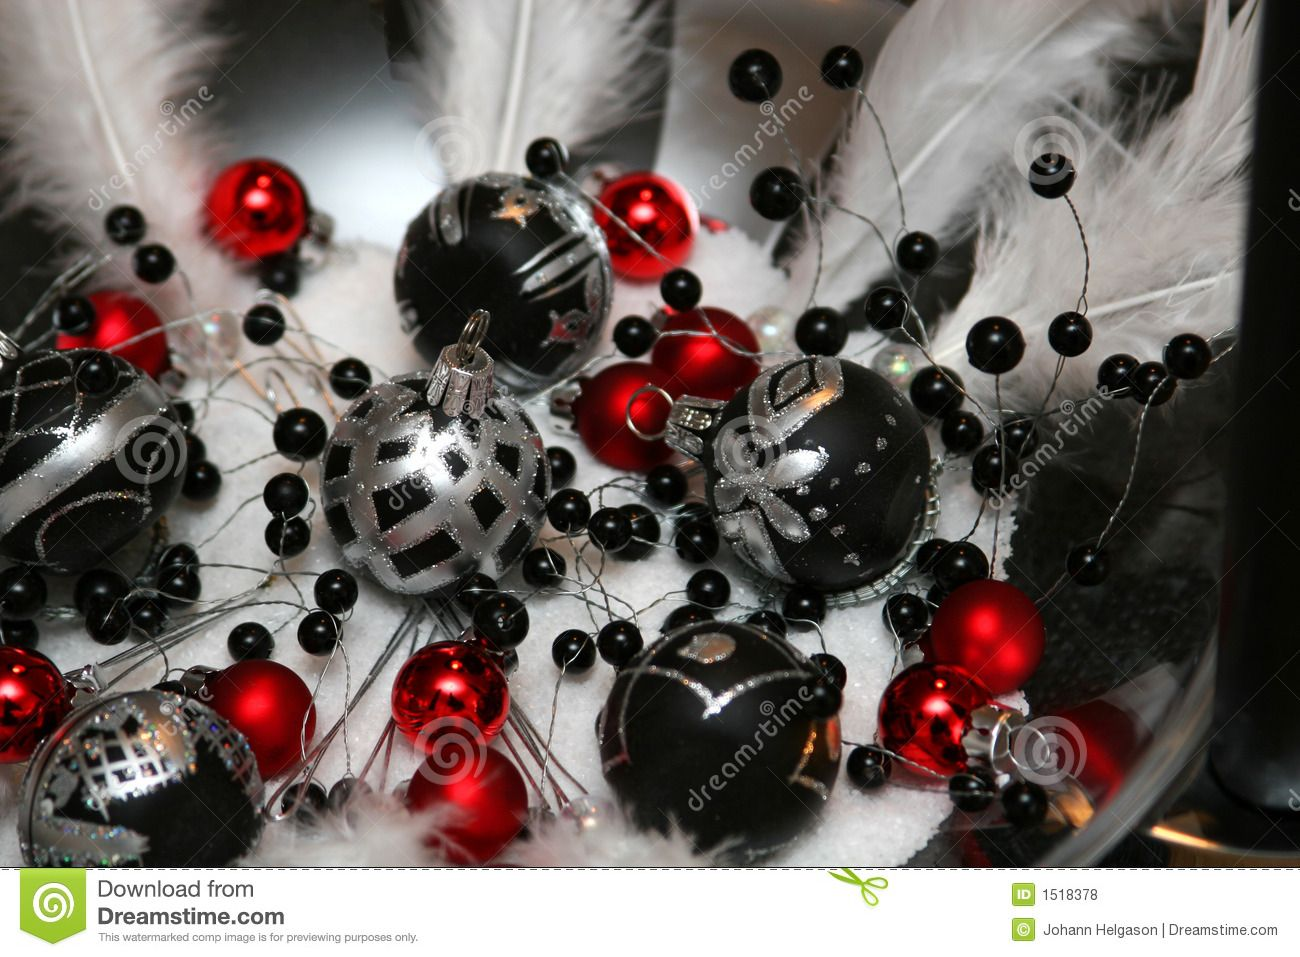 Decorations red black and white - Black And White Christmas Royalty Free Stock Photos Image 1518378 Red Christmas Decorationsblack